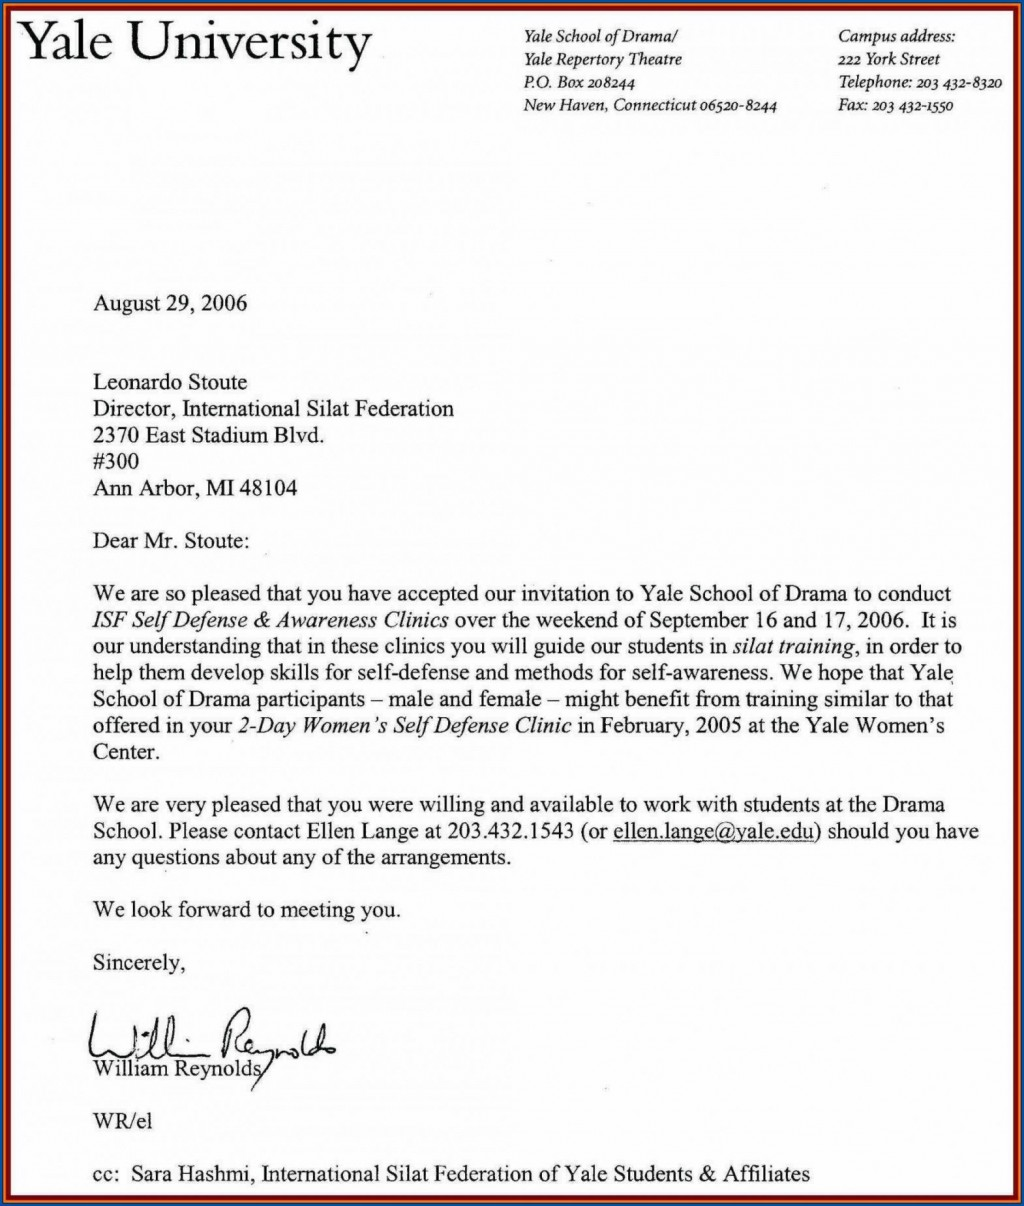 009 Remarkable College Letter Of Recommendation Template High Def  Writing Scholarship From EmployerLarge